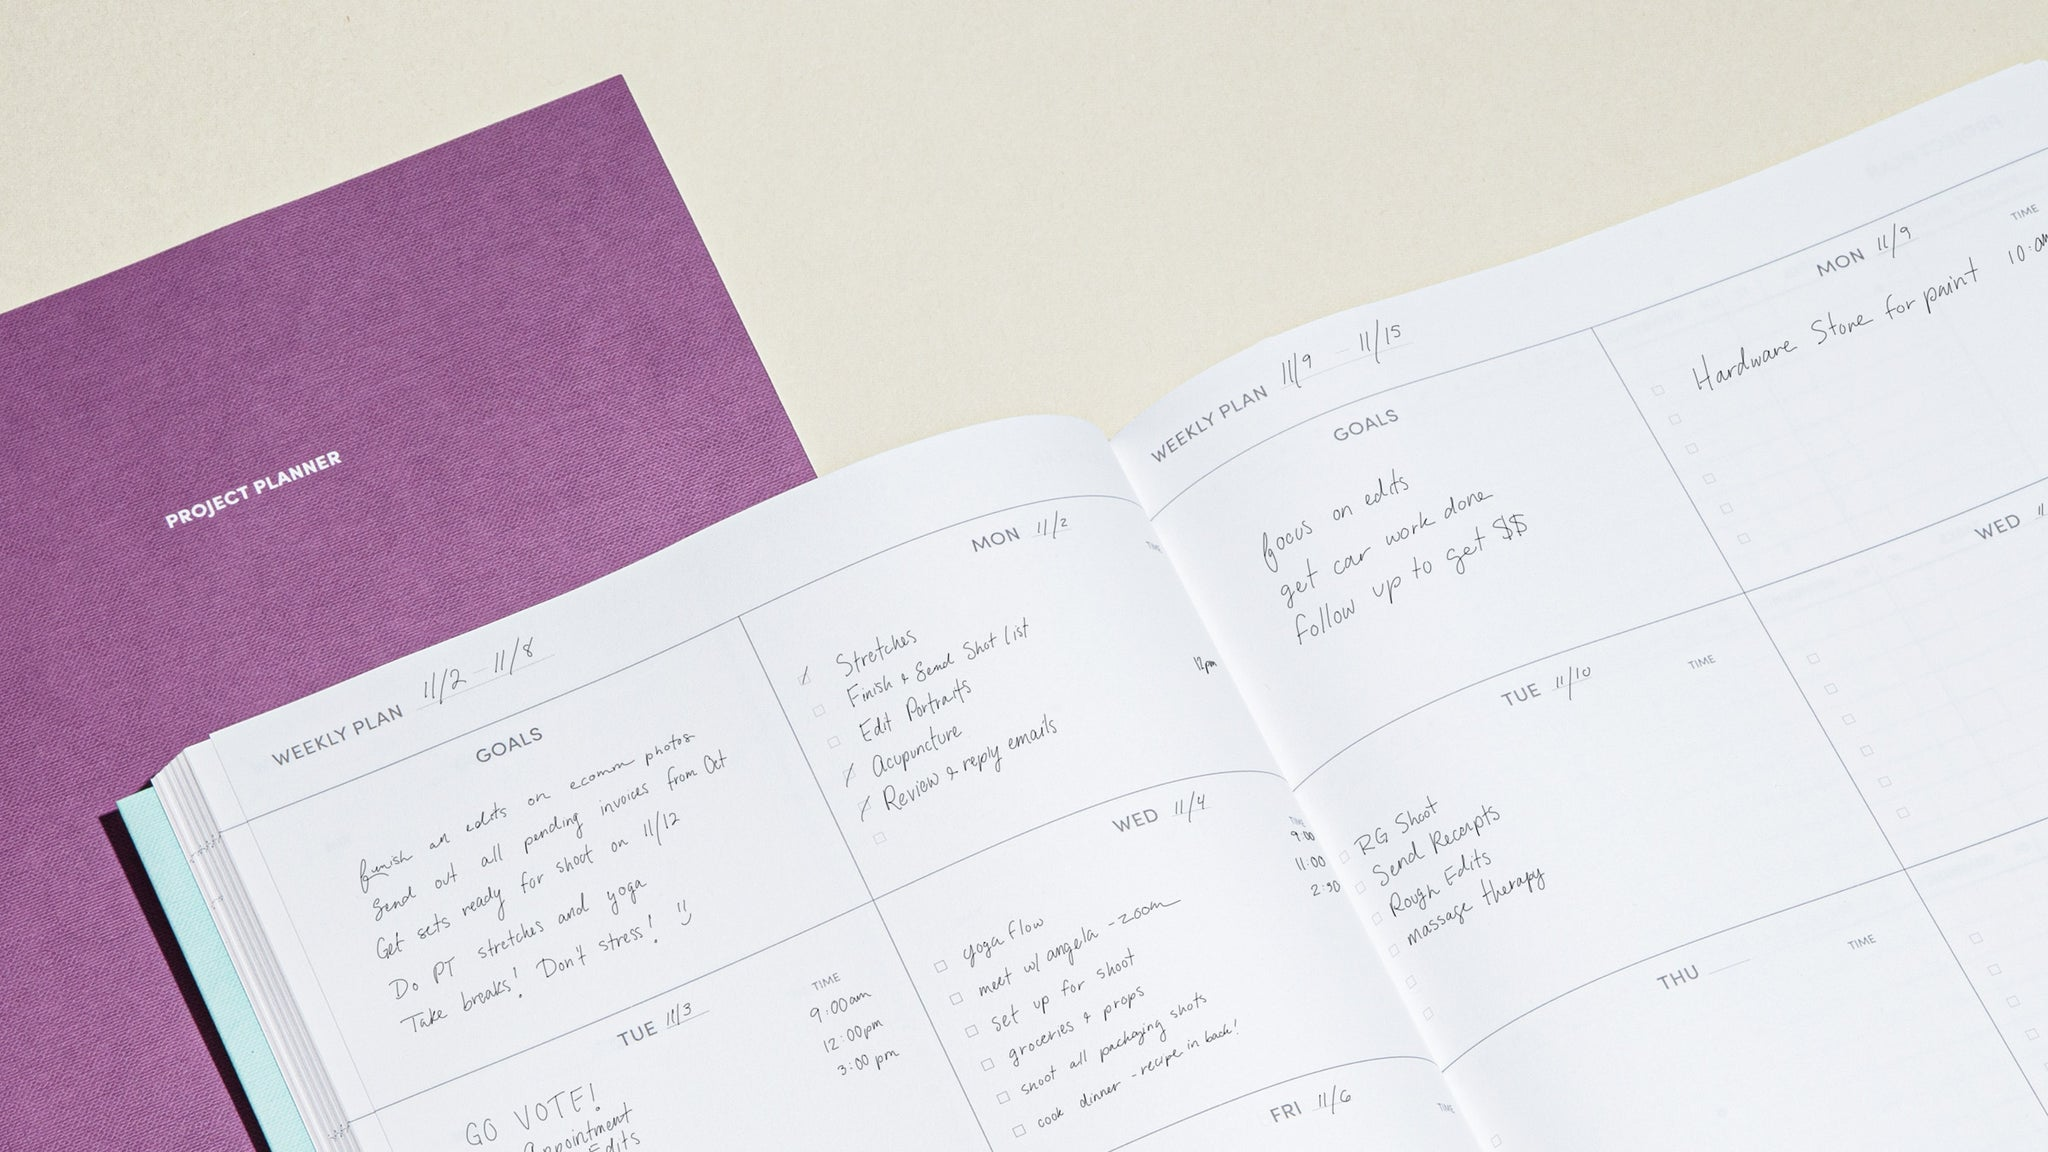 Project Planner Weekly Section